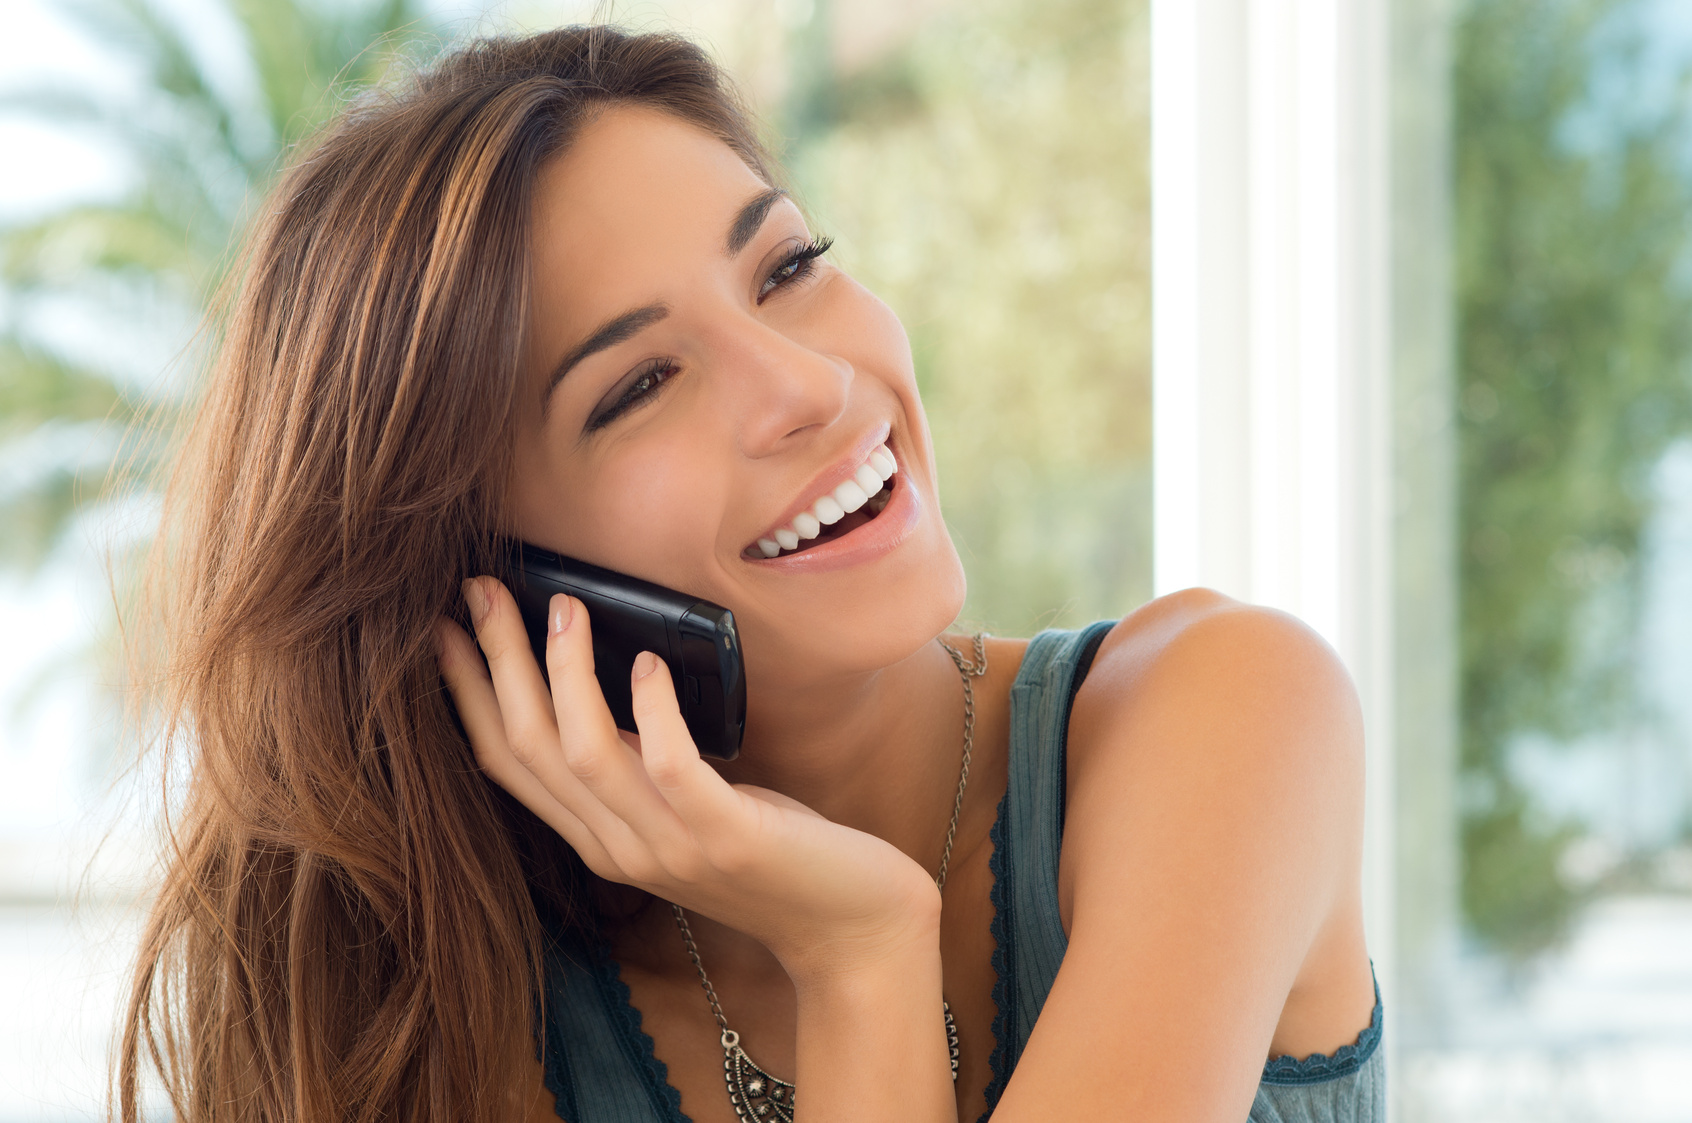 Unblock Whatsapp Call in UAE, How to Unblock Whatsapp Call in UAE, How to Unblock Whatsapp voice Call in UAE, How to Unblock Whatsapp Calling in UAE, VPN for Unblock Whatsapp call in UAE, Unblock Whatsapp call in UAE iPhone, Unblock Whatsapp Dubai